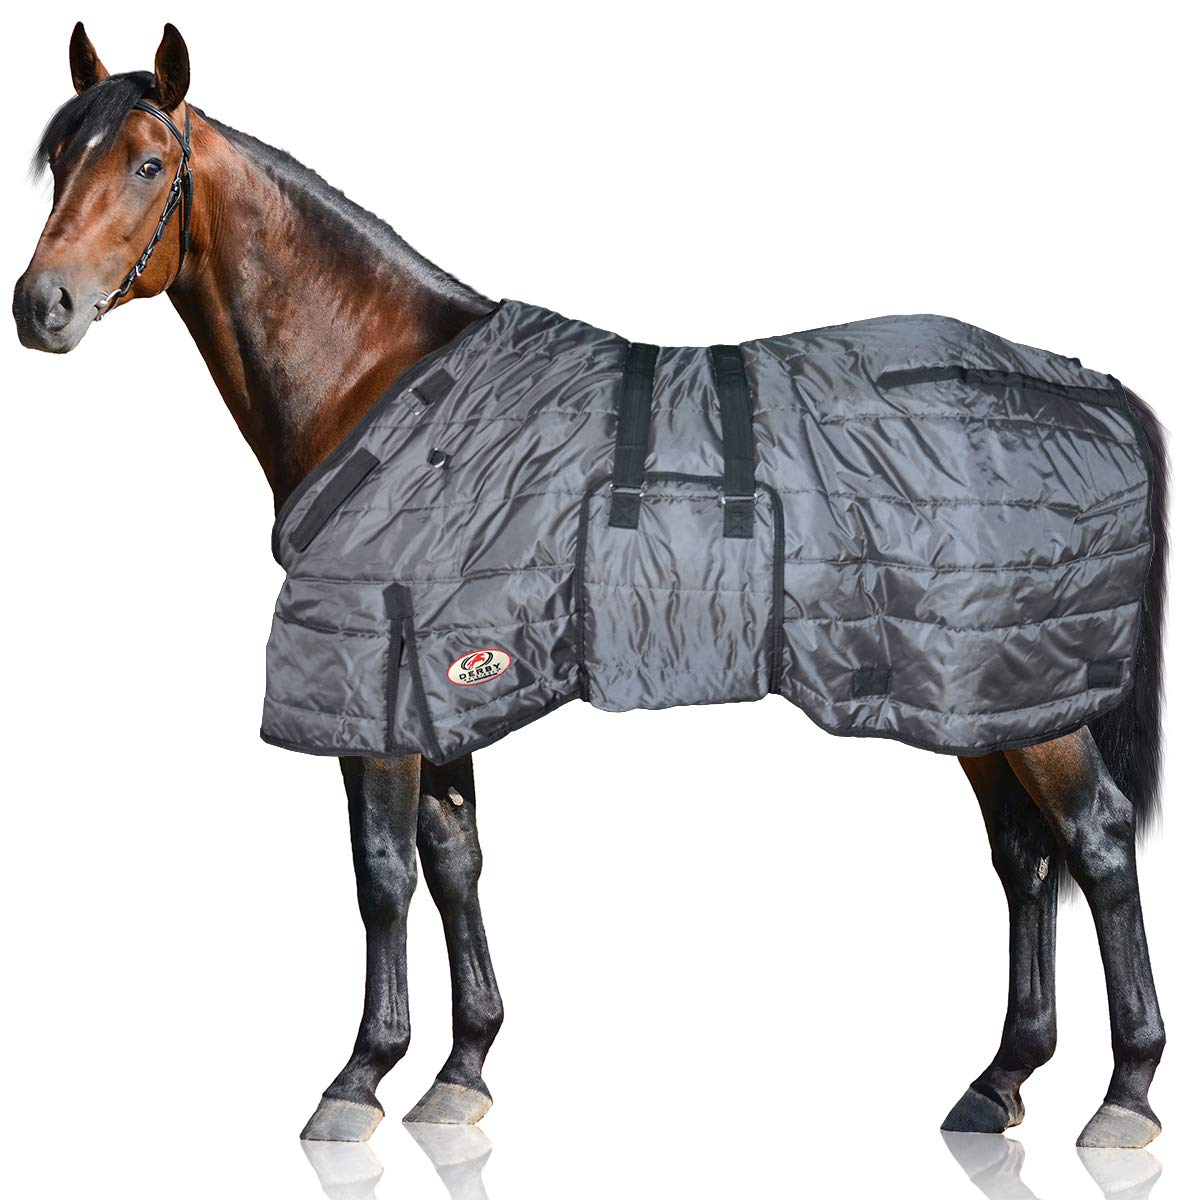 Charcoal 78\ Charcoal 78\ Derby Originals Windstorm Series Premium Horse and Draft Winter Stable Blanket with 420D Breathable Nylon Exterior Medium Weight 200g Polyfil Insulation